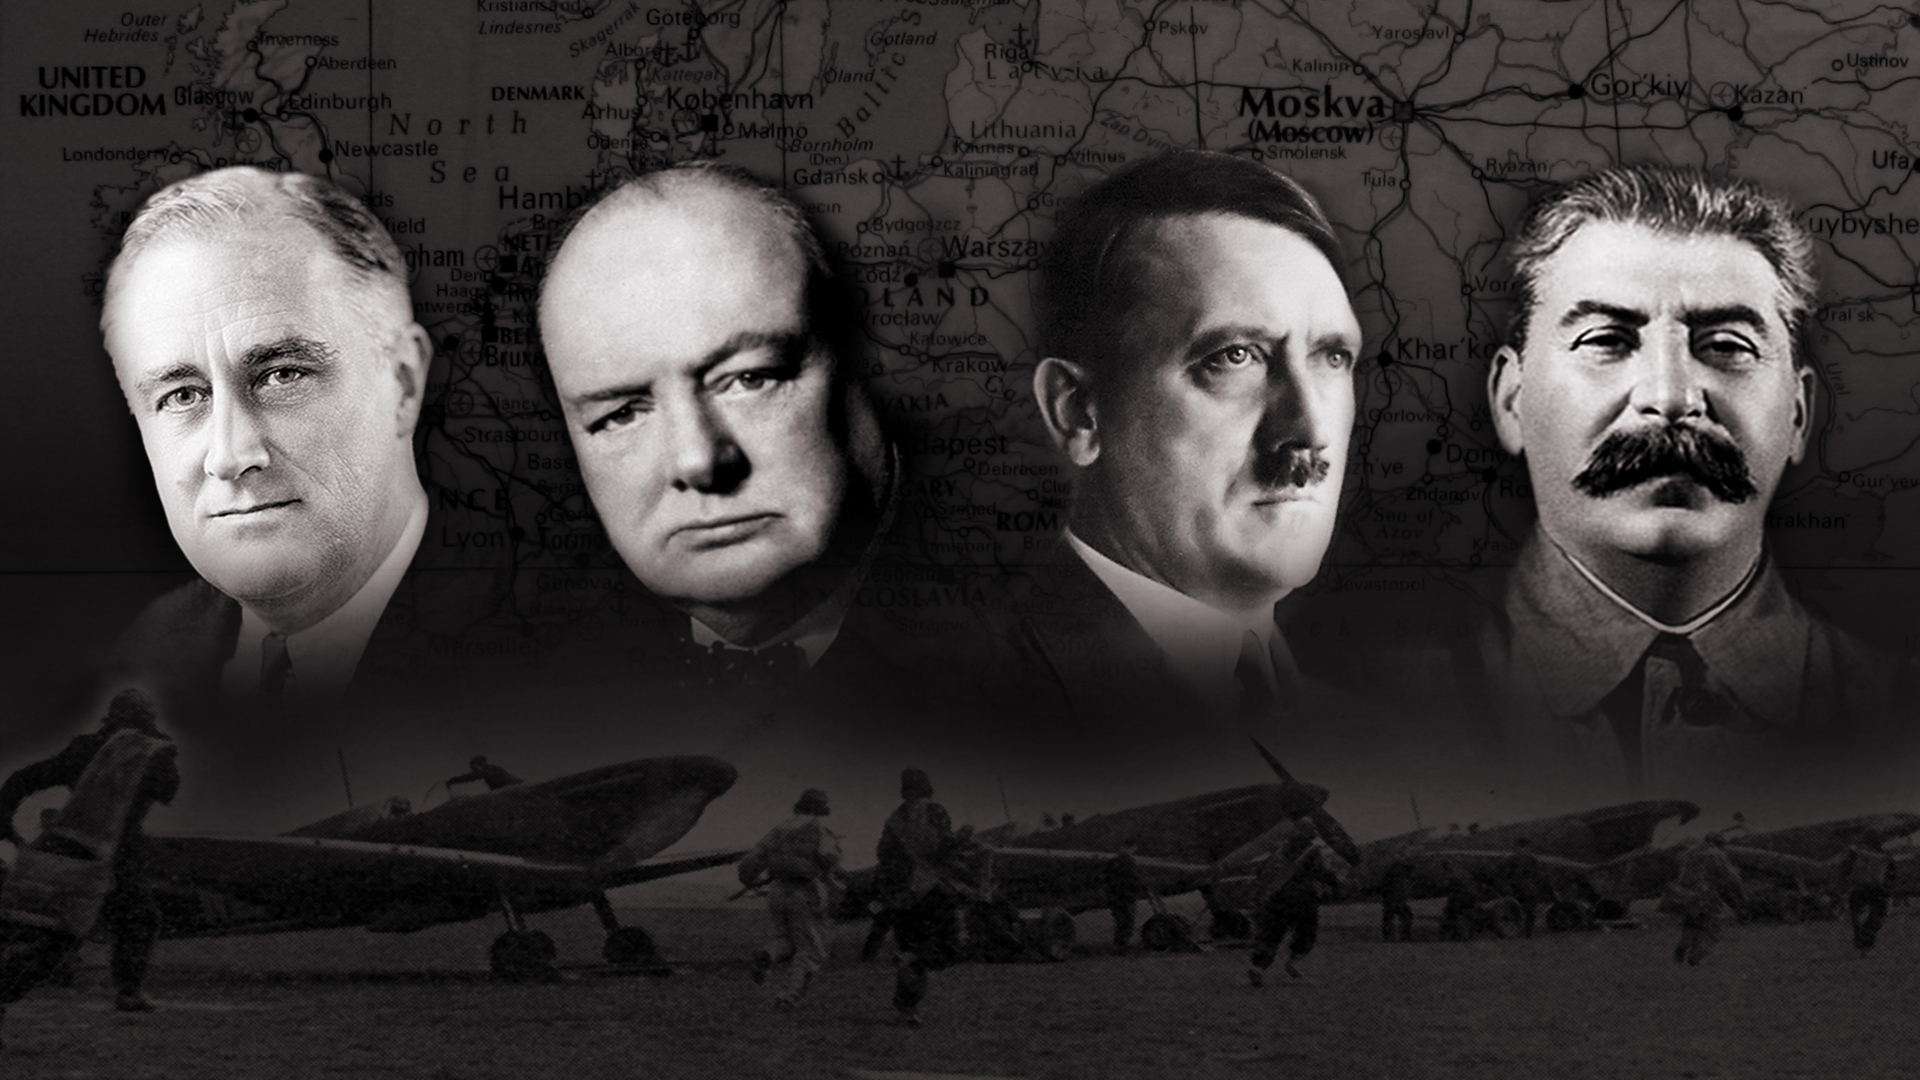 World War 2 - The Call of Duty: A Complete Timeline